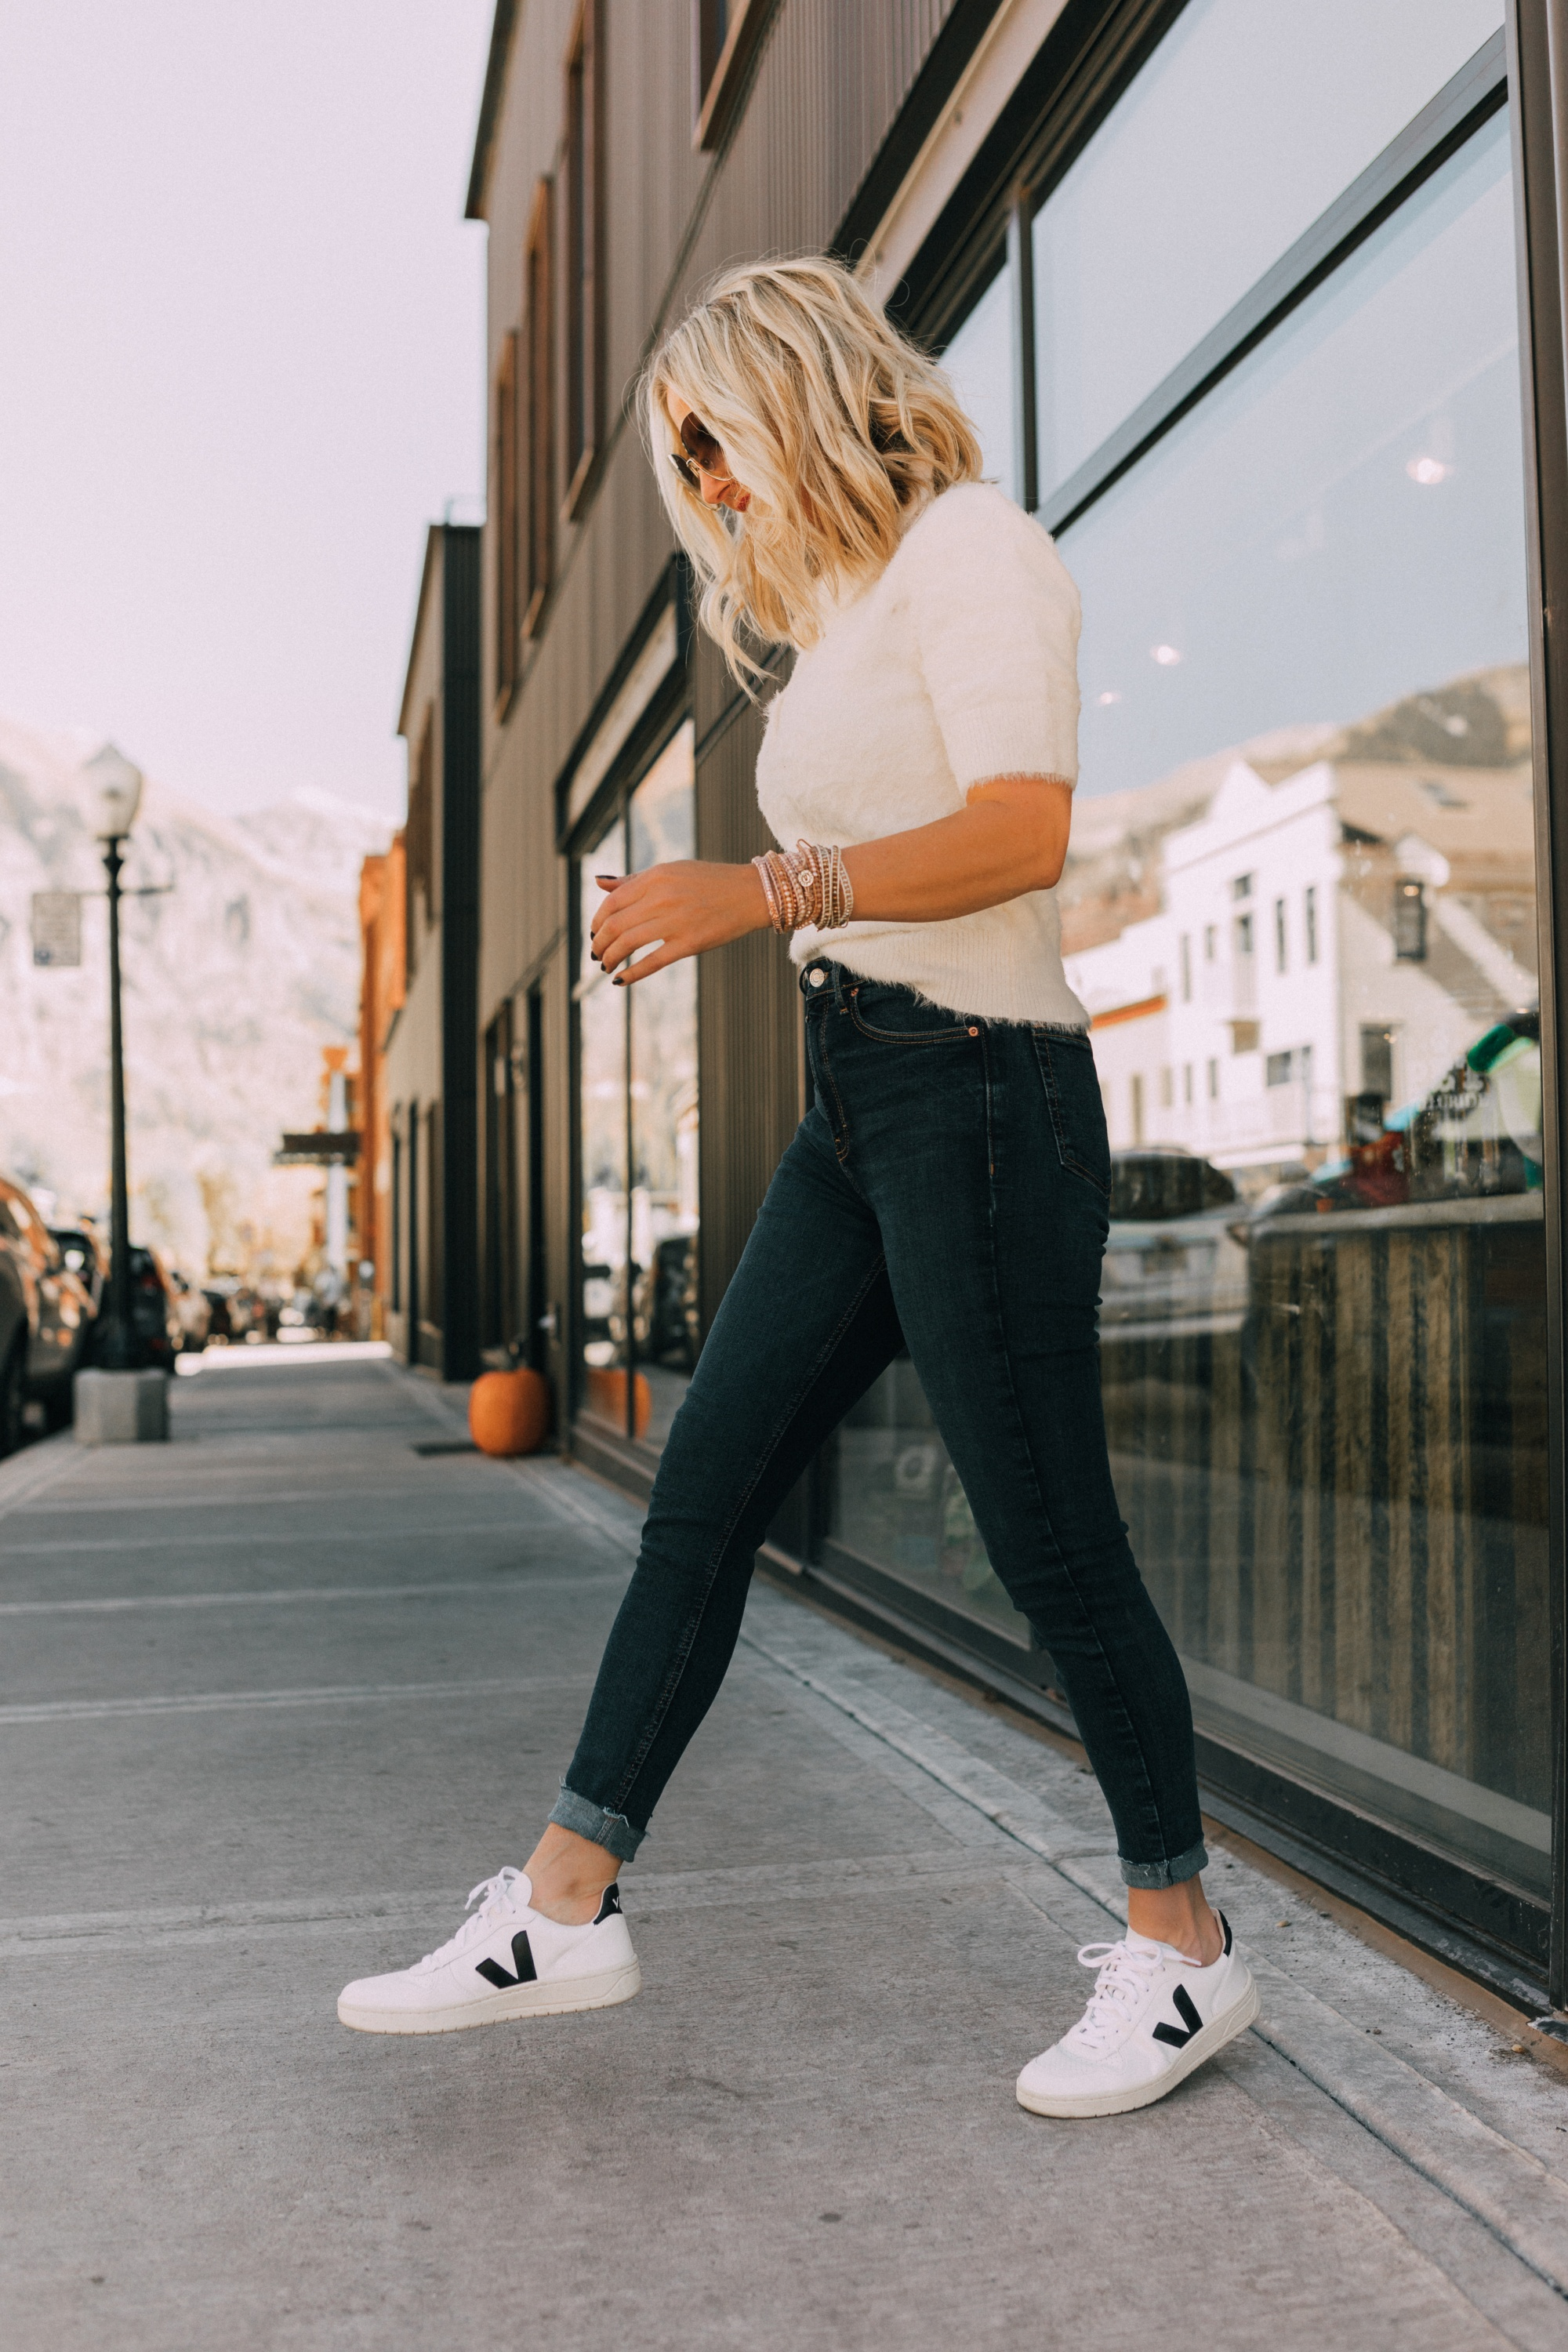 veja v-10 sneakers outfit, fashion blogger over 40 busbee style wearing white leather veja sneakers with white t shirt